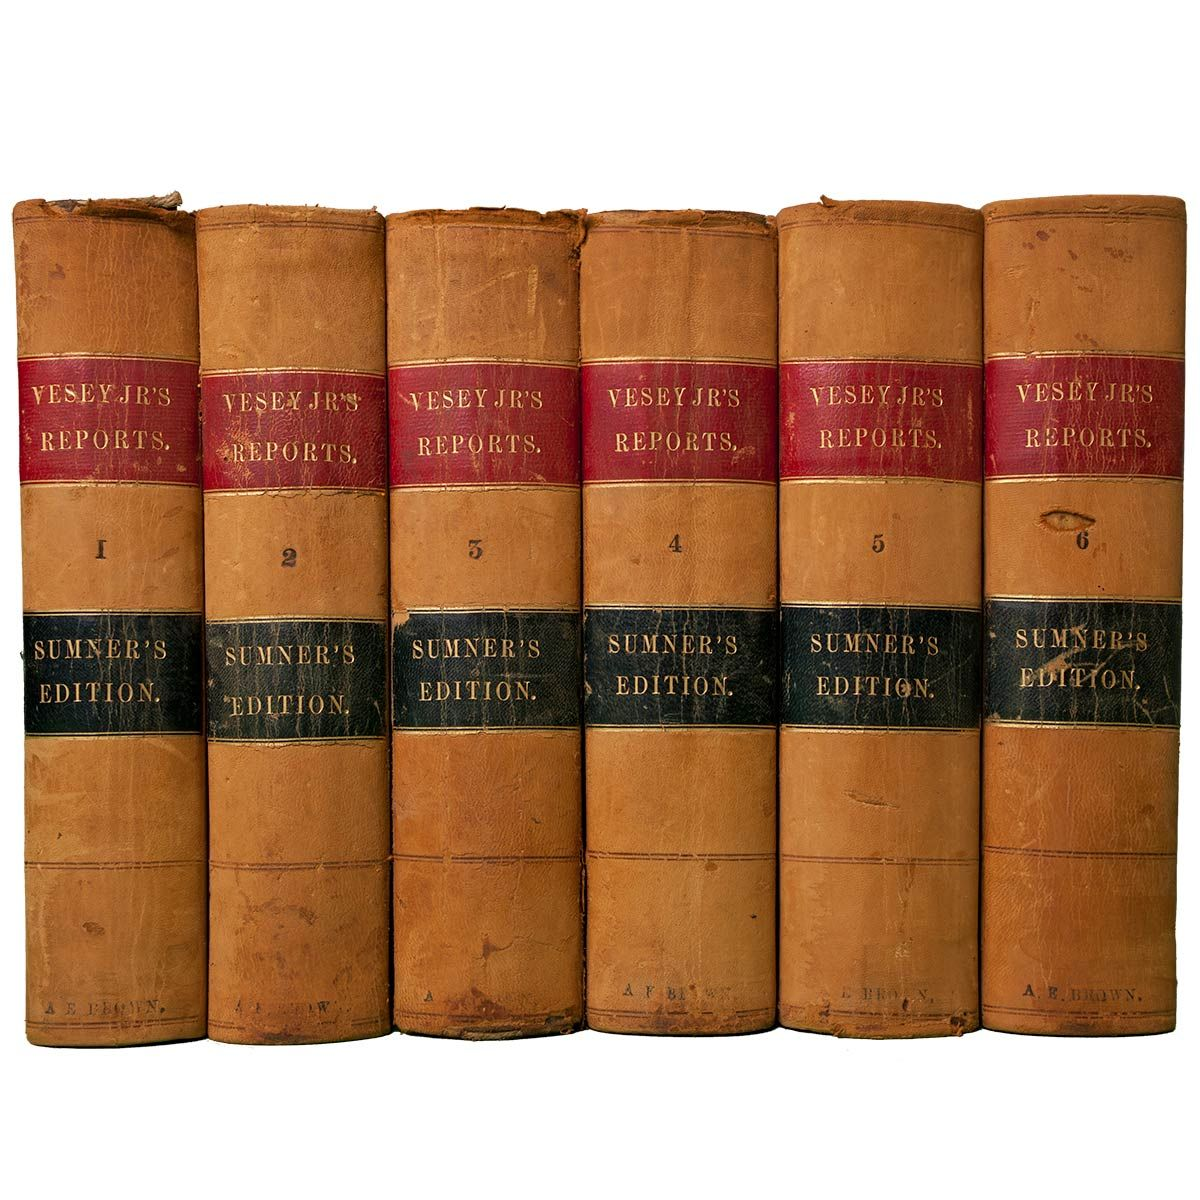 Antique And Leather Book Collections Libraries Juniper Books Law Books Antique Books Leather Books